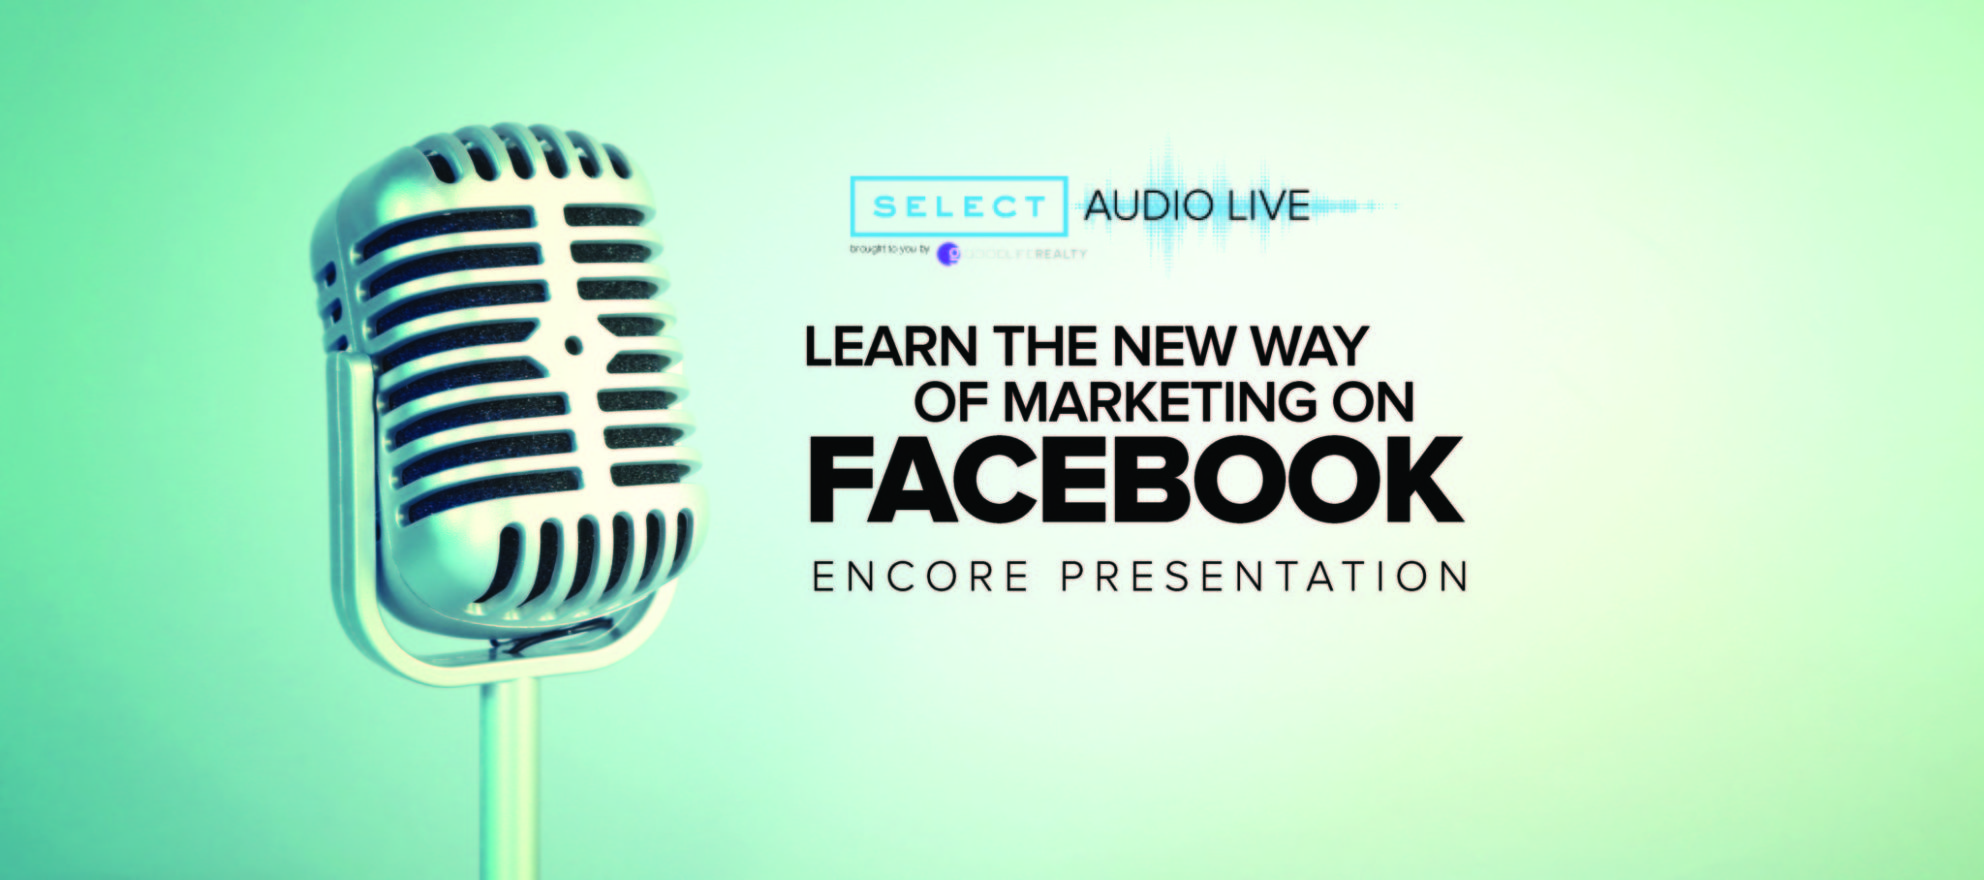 Learn the new rules of marketing on the world's largest social network